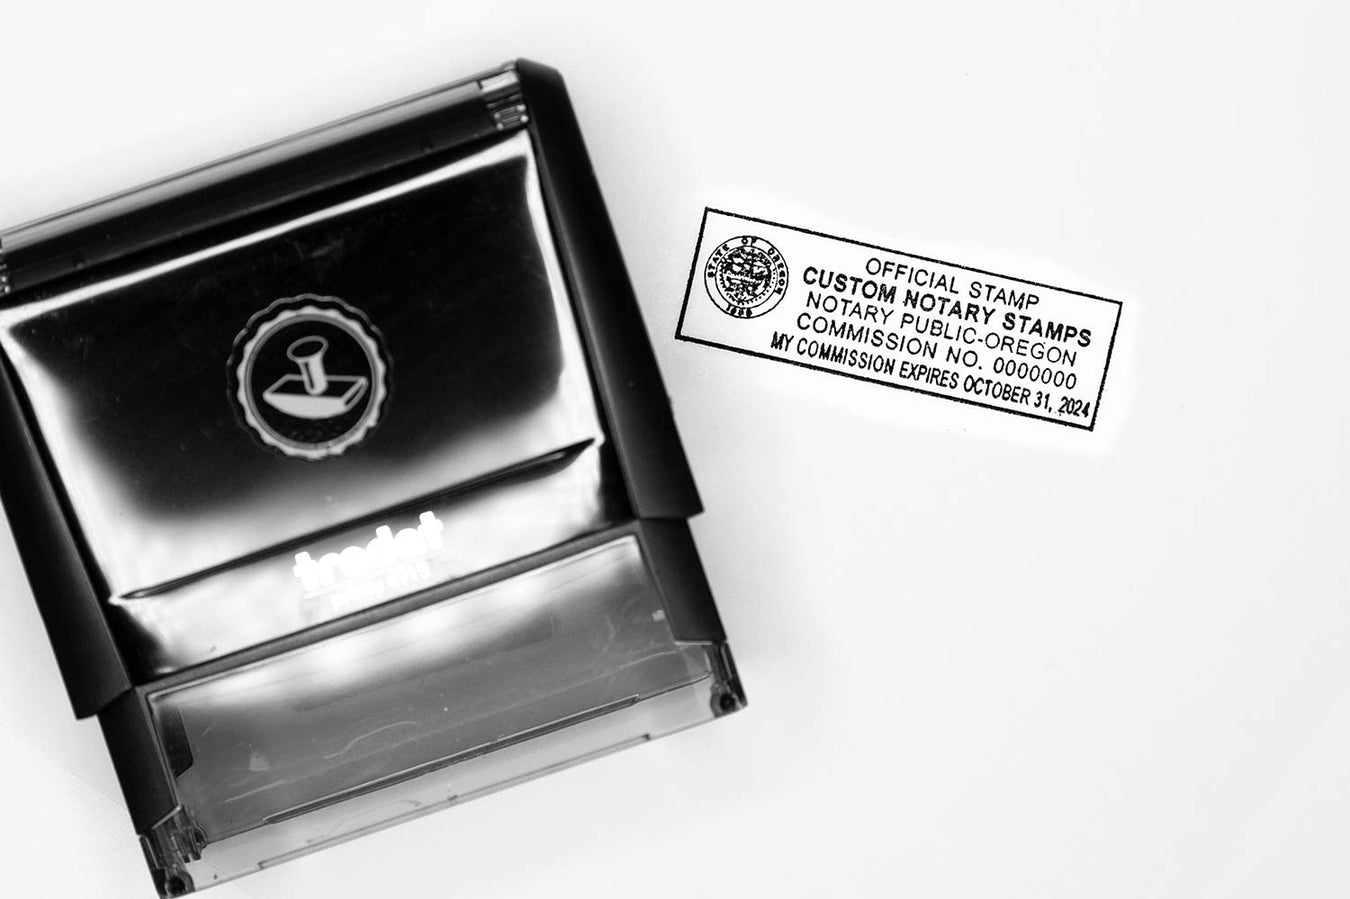 custom self inking notary stamps